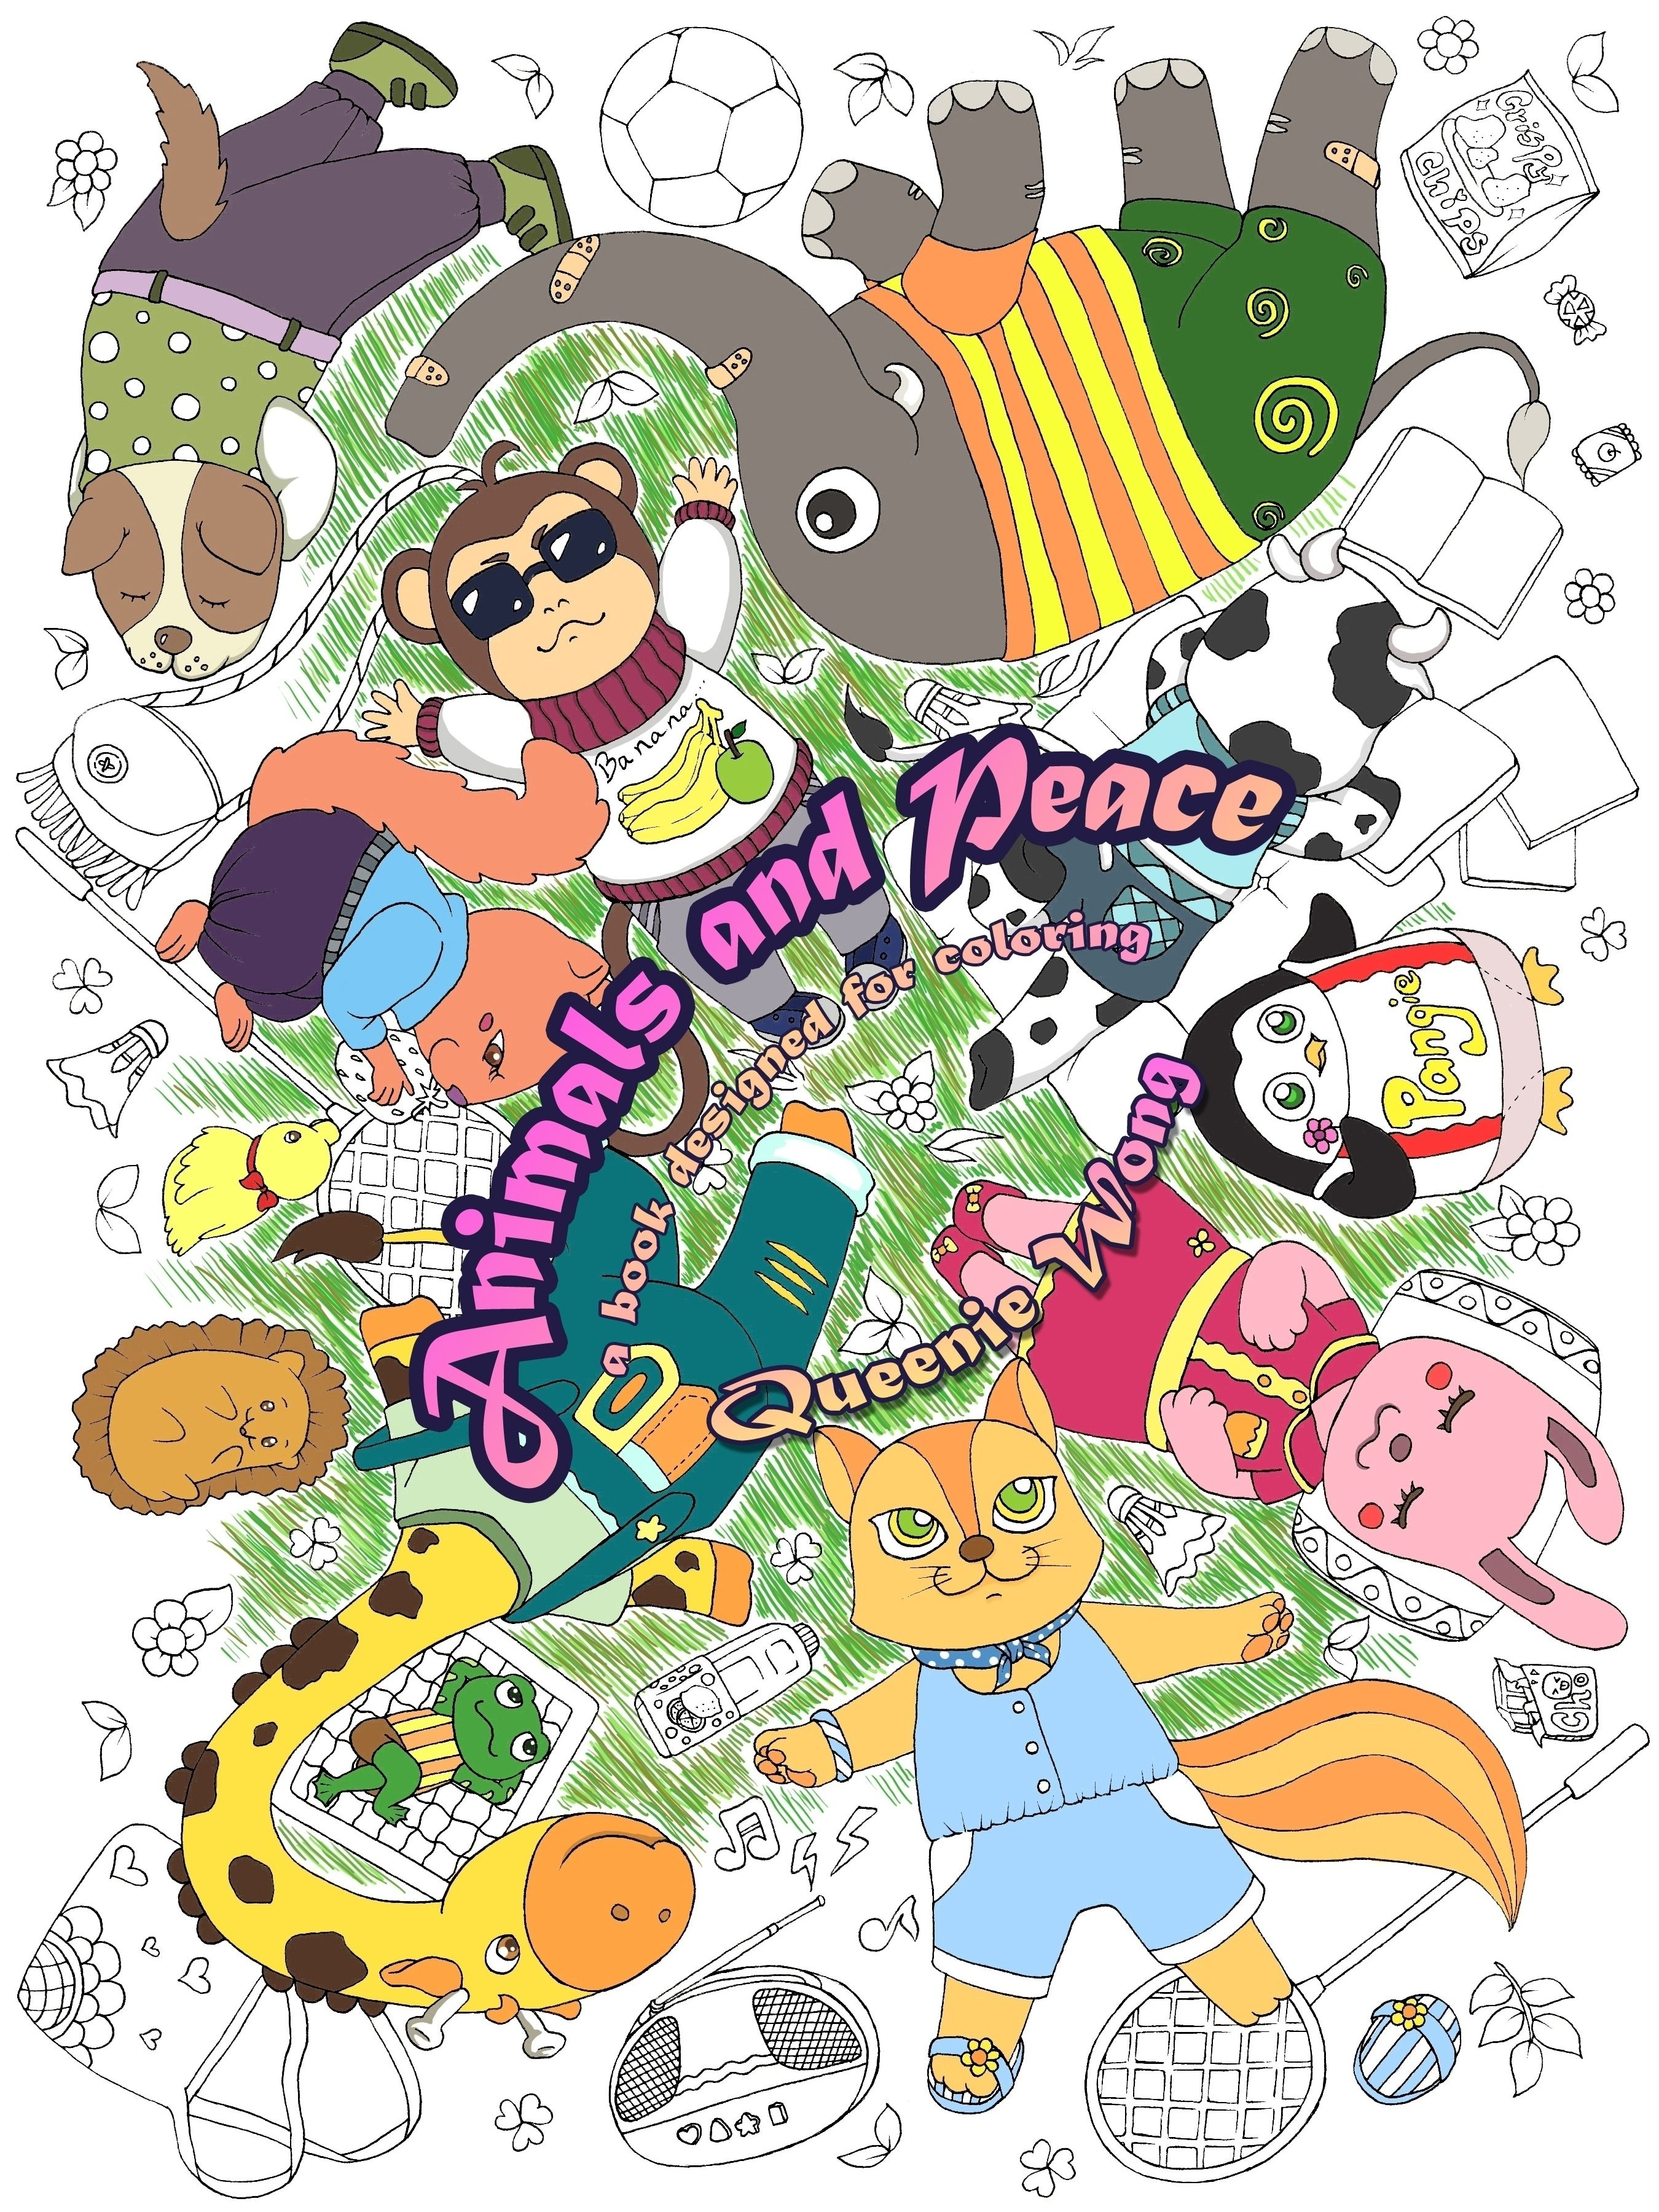 Animals and Peace - A book designed for coloring by Queenie Wong. It is selling on Amazon.